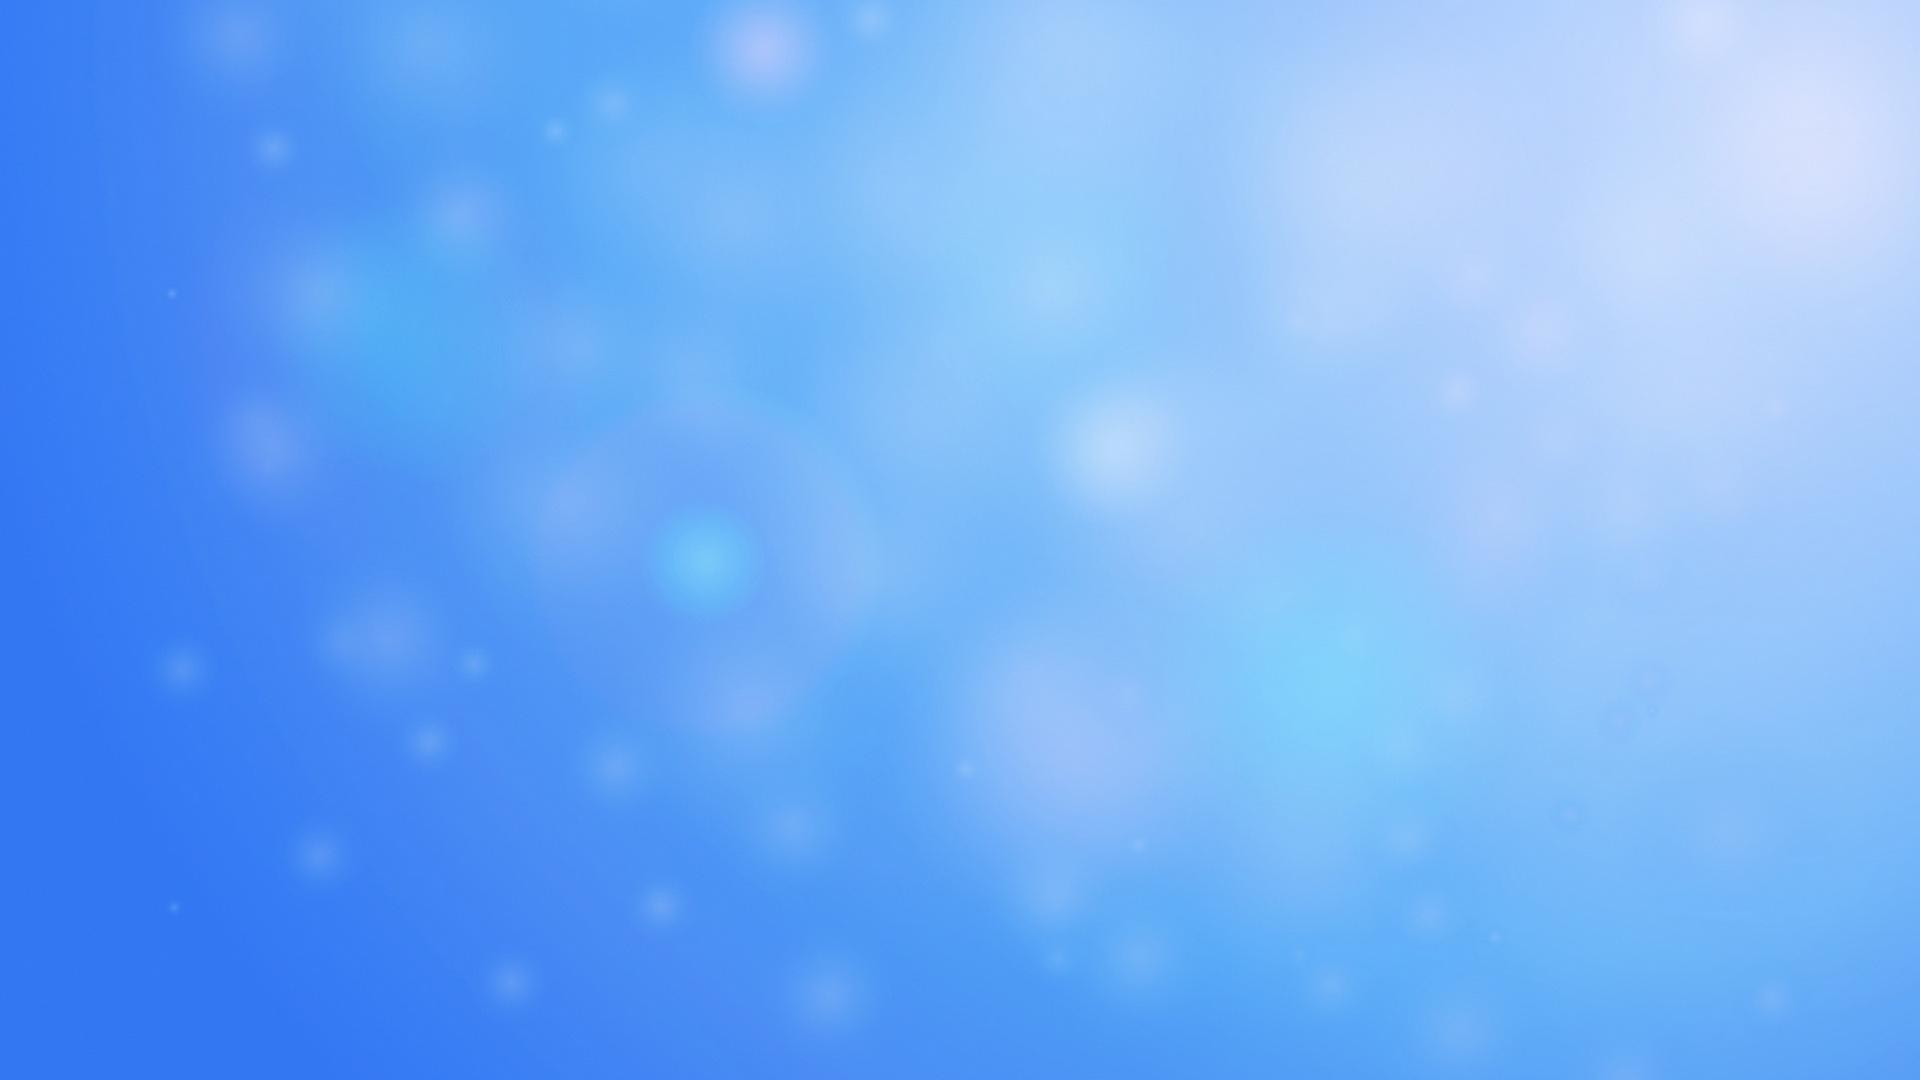 1920x1080  Blue and pink backgrounds for windows 7 wide wallpapers :1280x800,1440x900,1680x1050